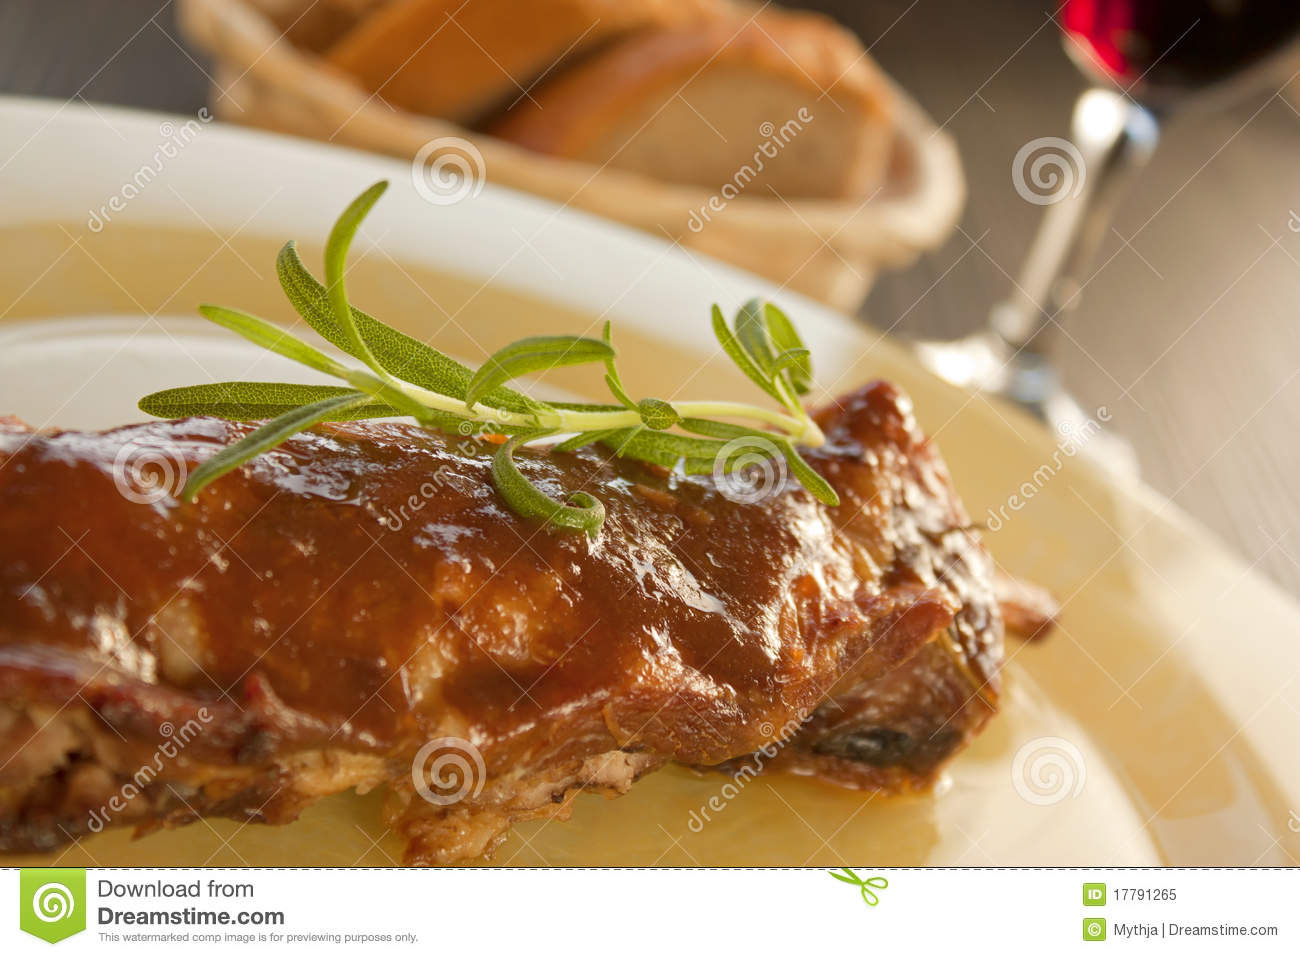 Veal ribs with sauce